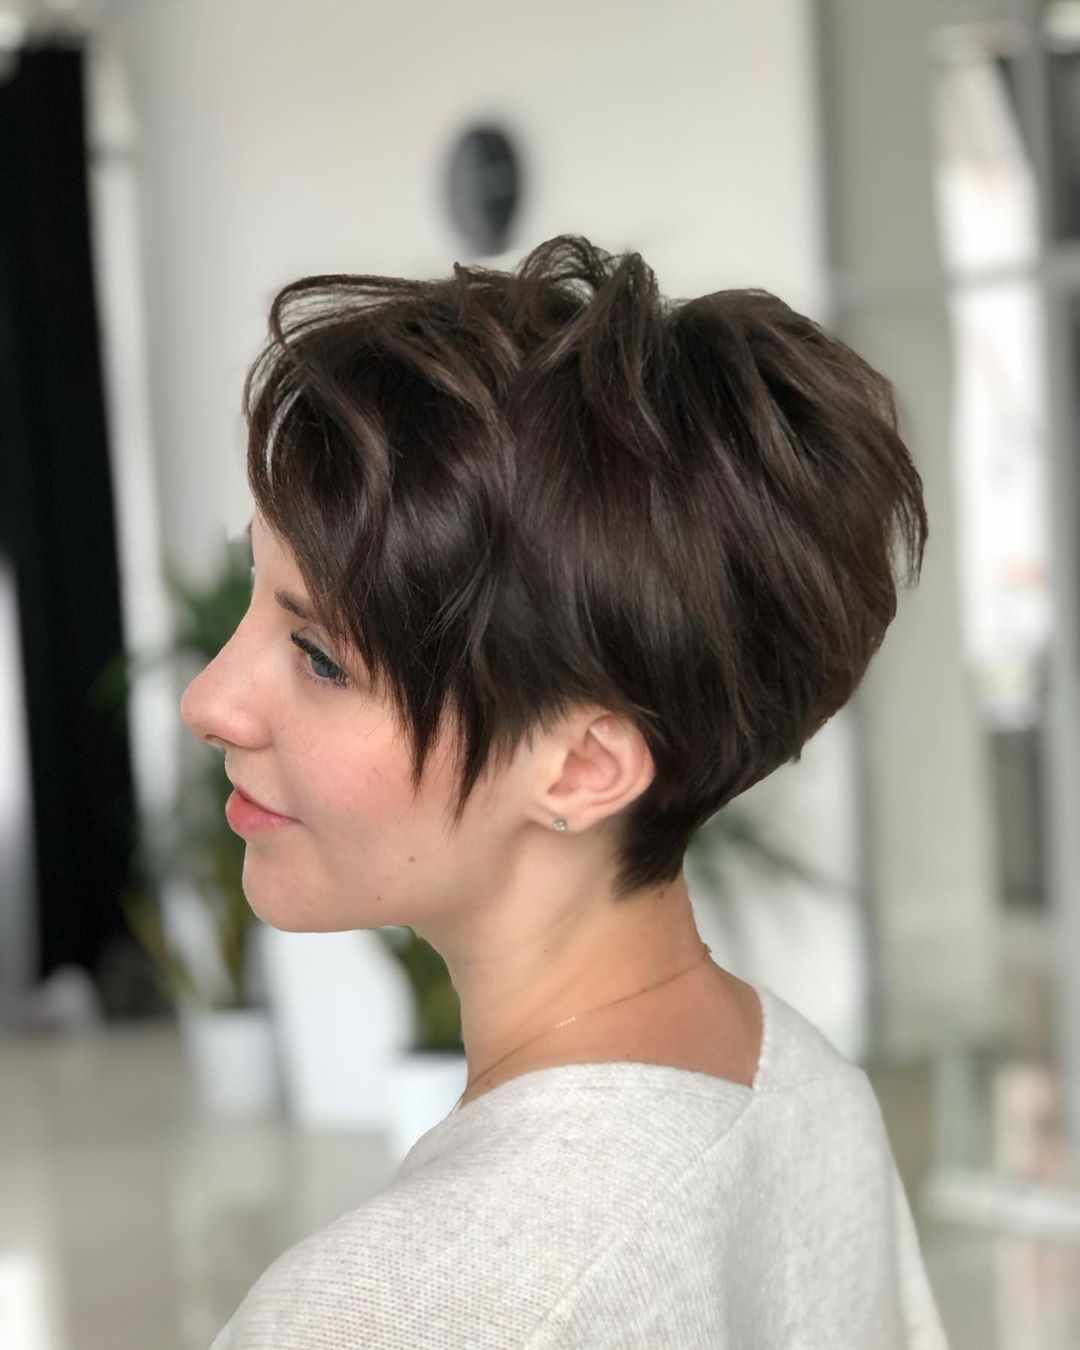 40 Latest Short Hairstyles For Winter 2020 Pixie Haircut Short